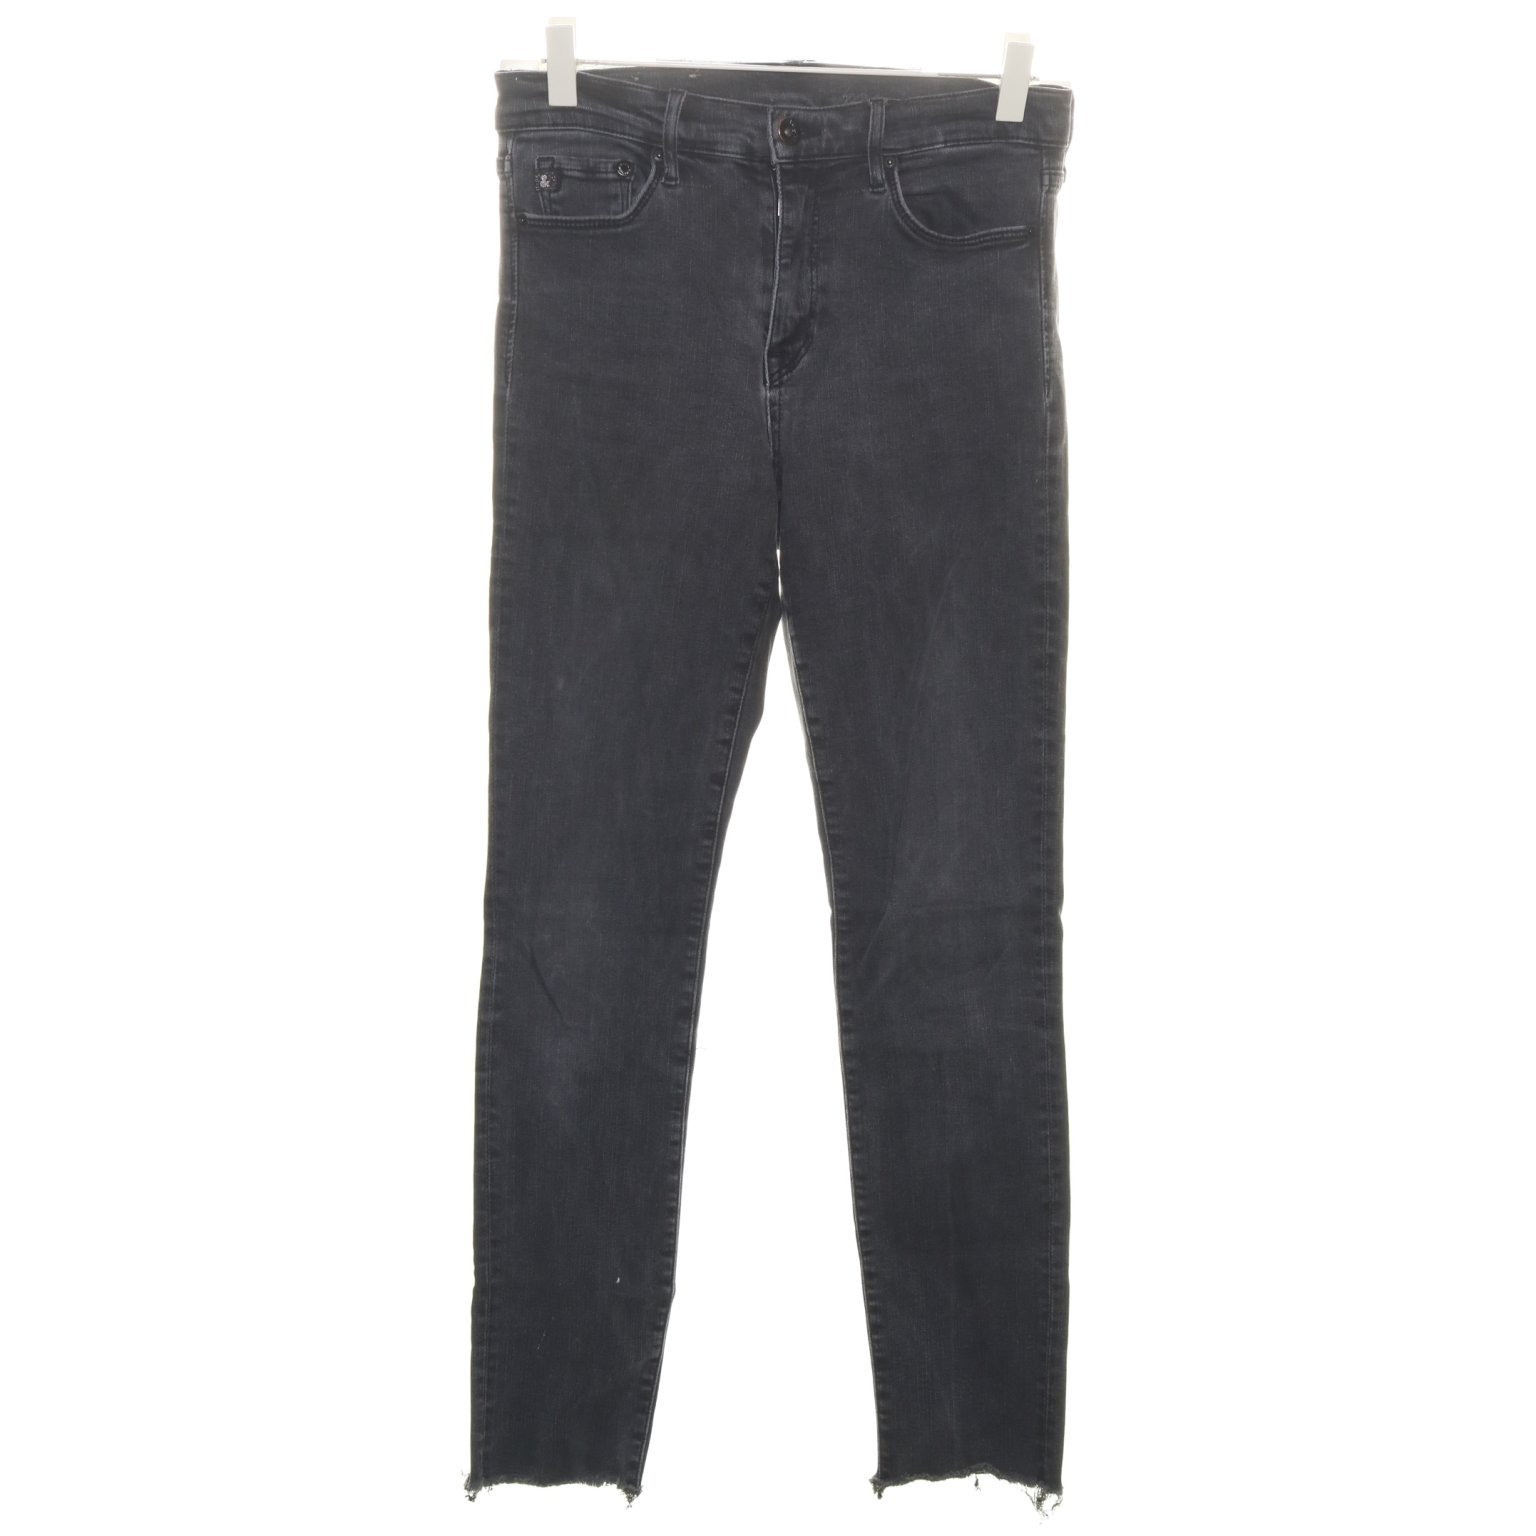 &Denim by H&M, Jeans, Strl: 28/32, Svart, Skinn